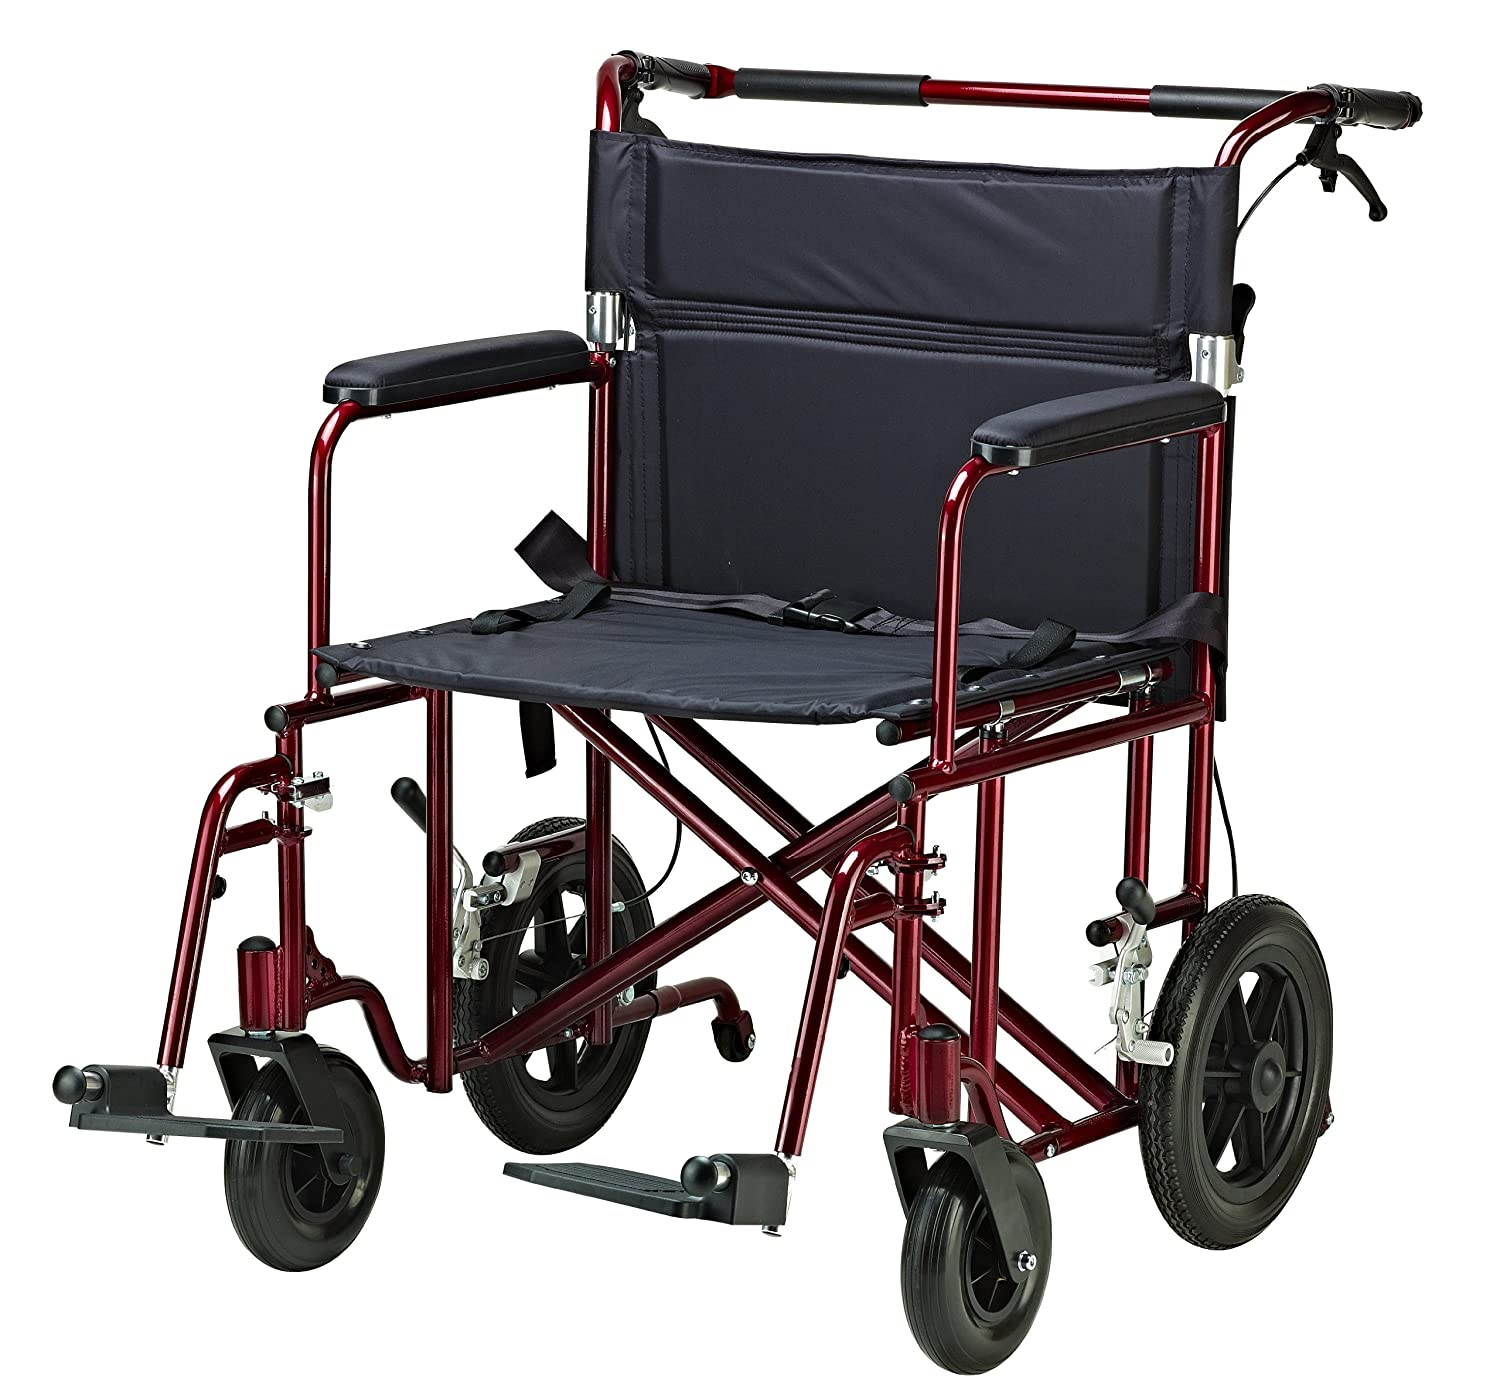 Amazon.com: Drive Medical Bariatric Transport Chair with 12 Inches ...